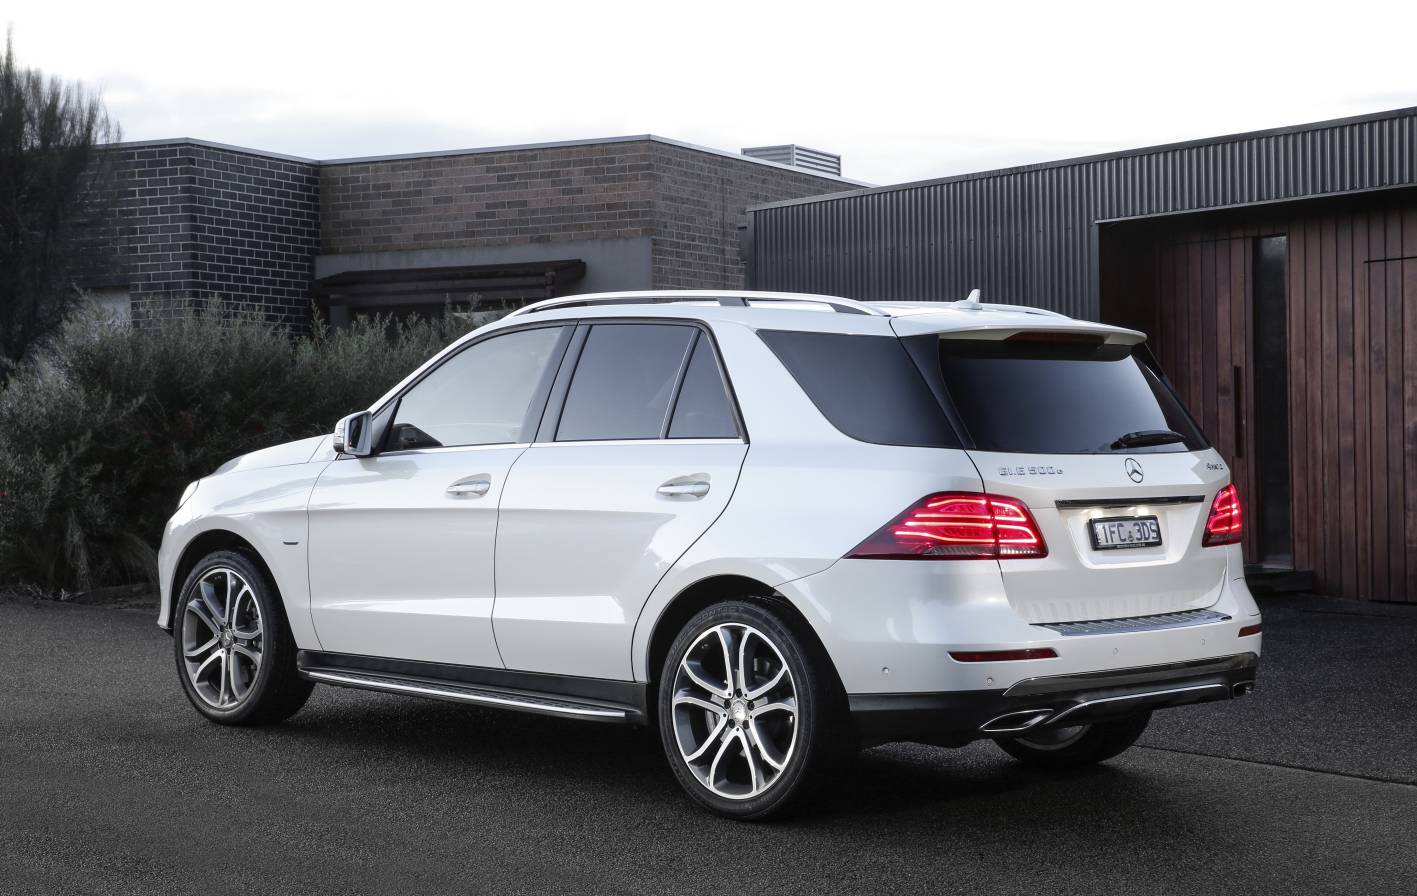 After a staggering eight failures, GLE owner Chris Jovanovski says his family has no confidence in the GLE, and he continues to pay for a car that he cannot use